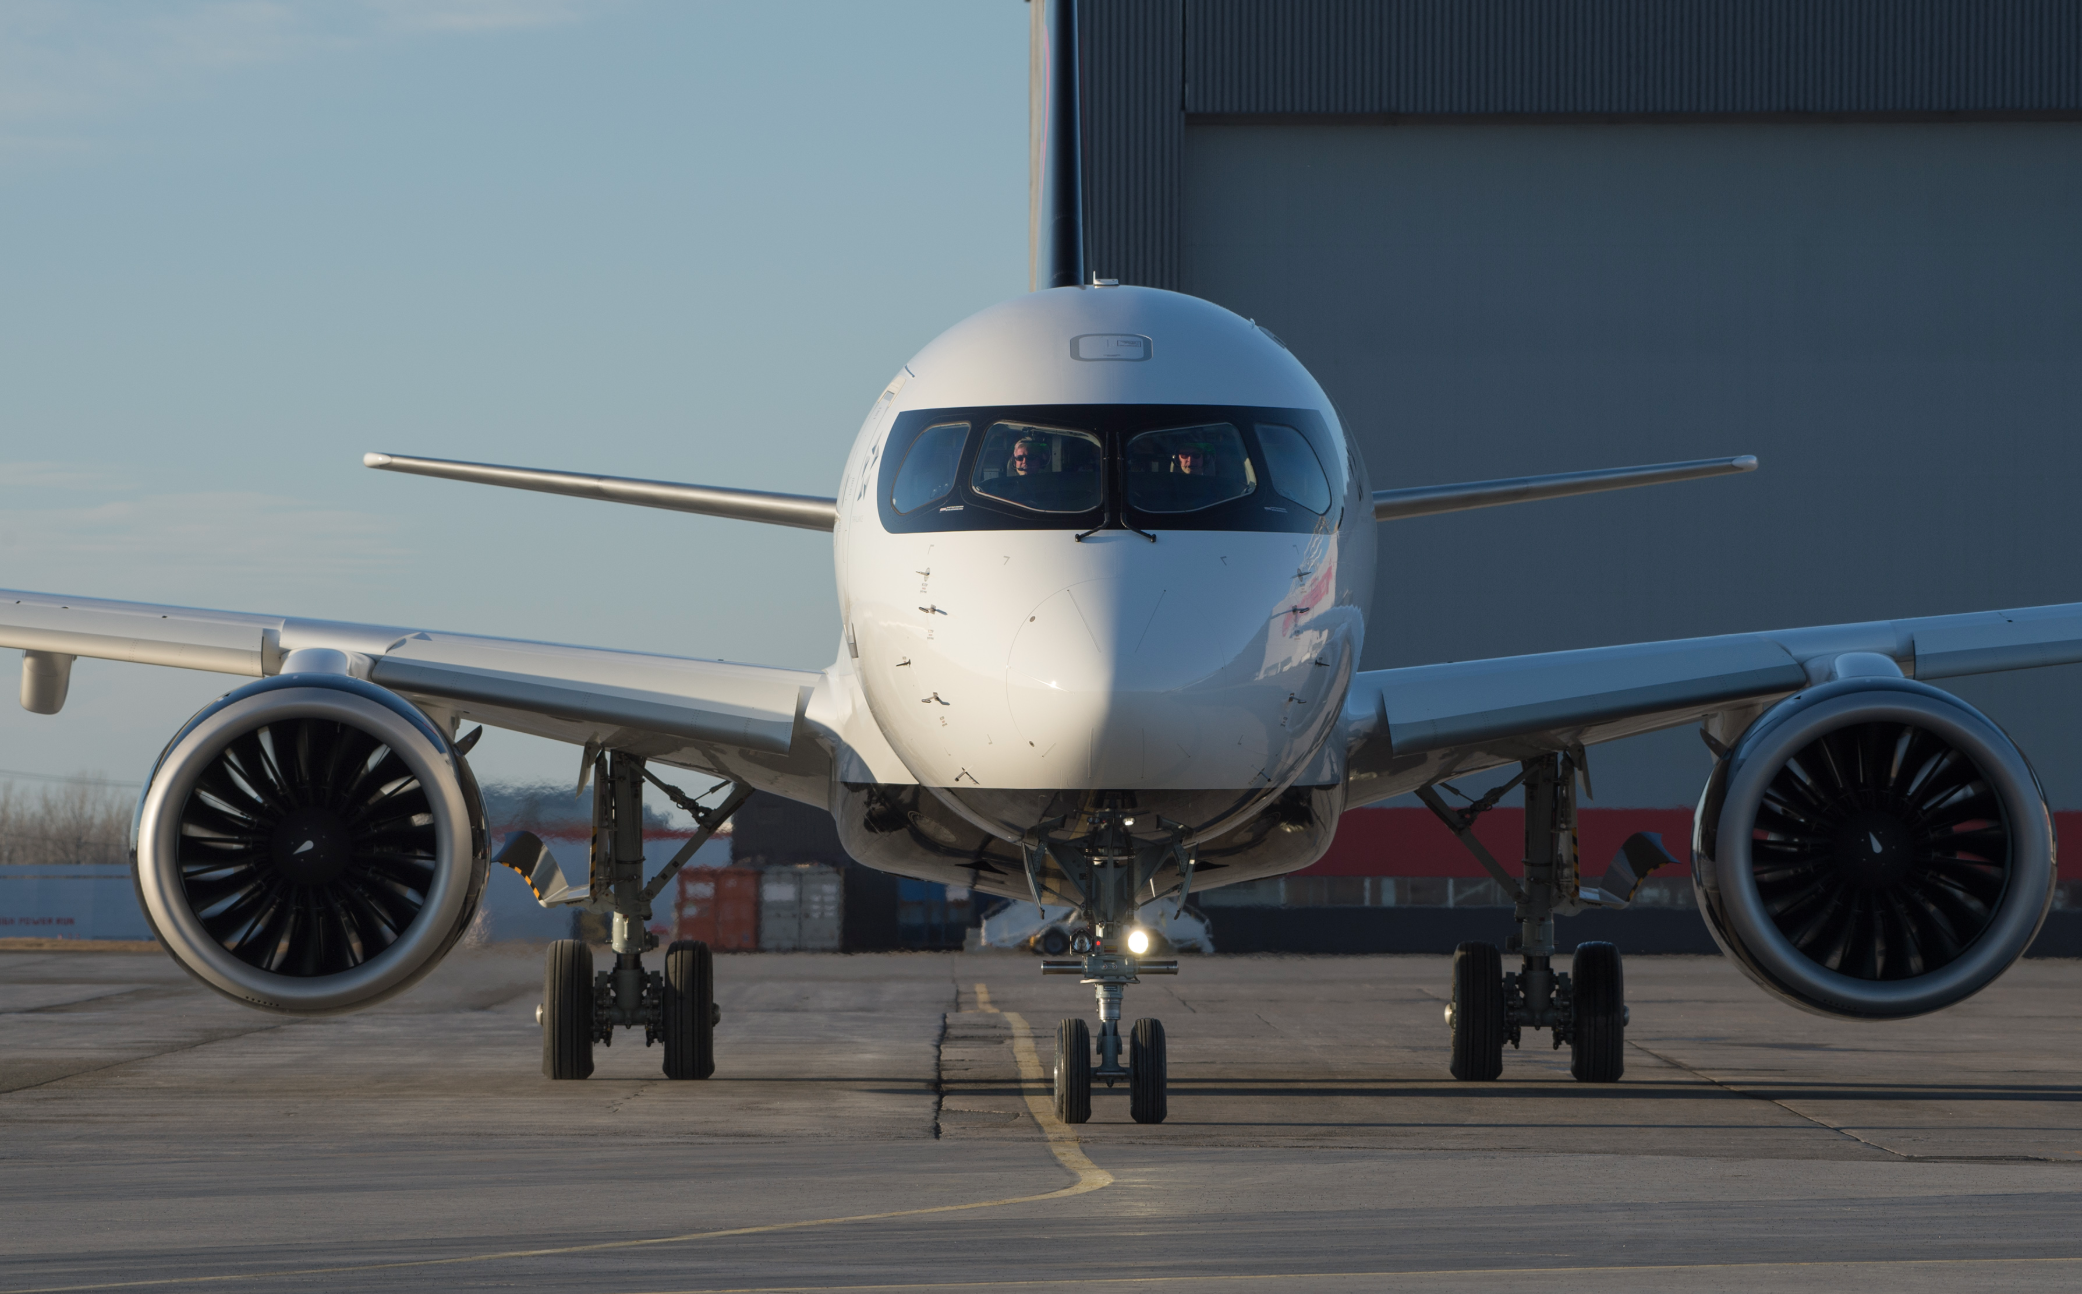 Air Canada Celebrates the Arrival of its First Airbus A220 - InsideFlyer